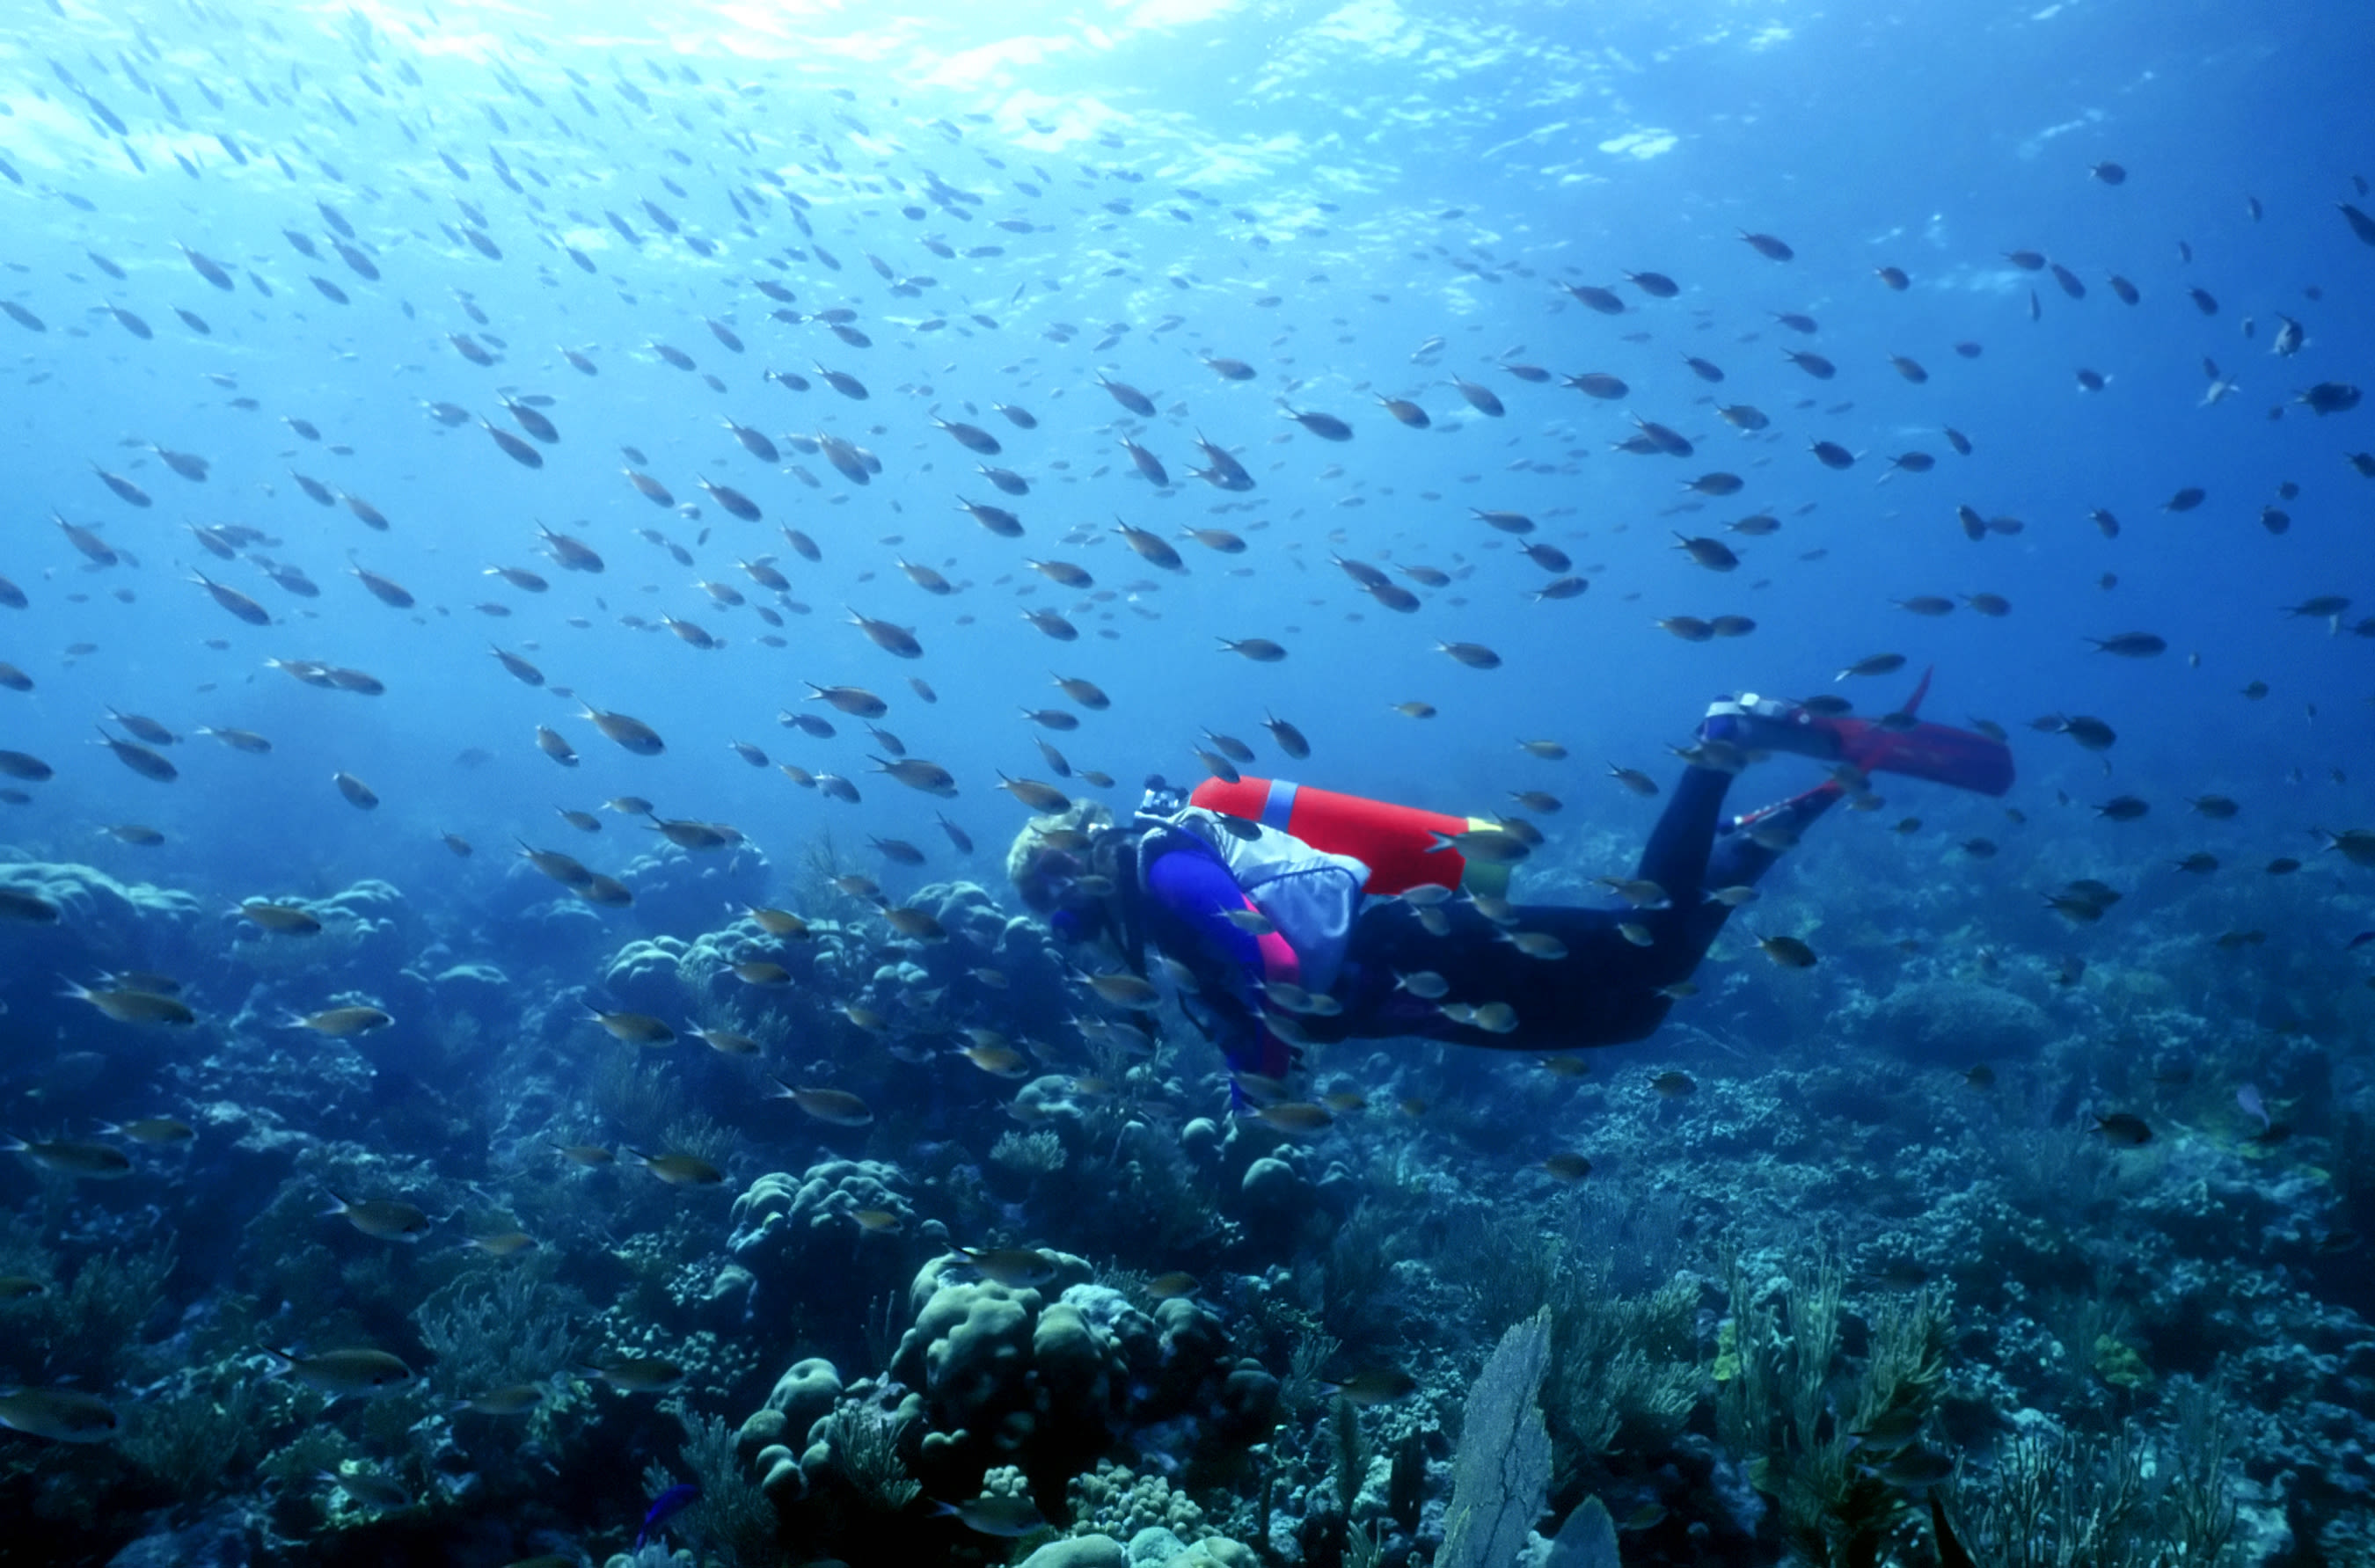 A scuba diver underwater with fish